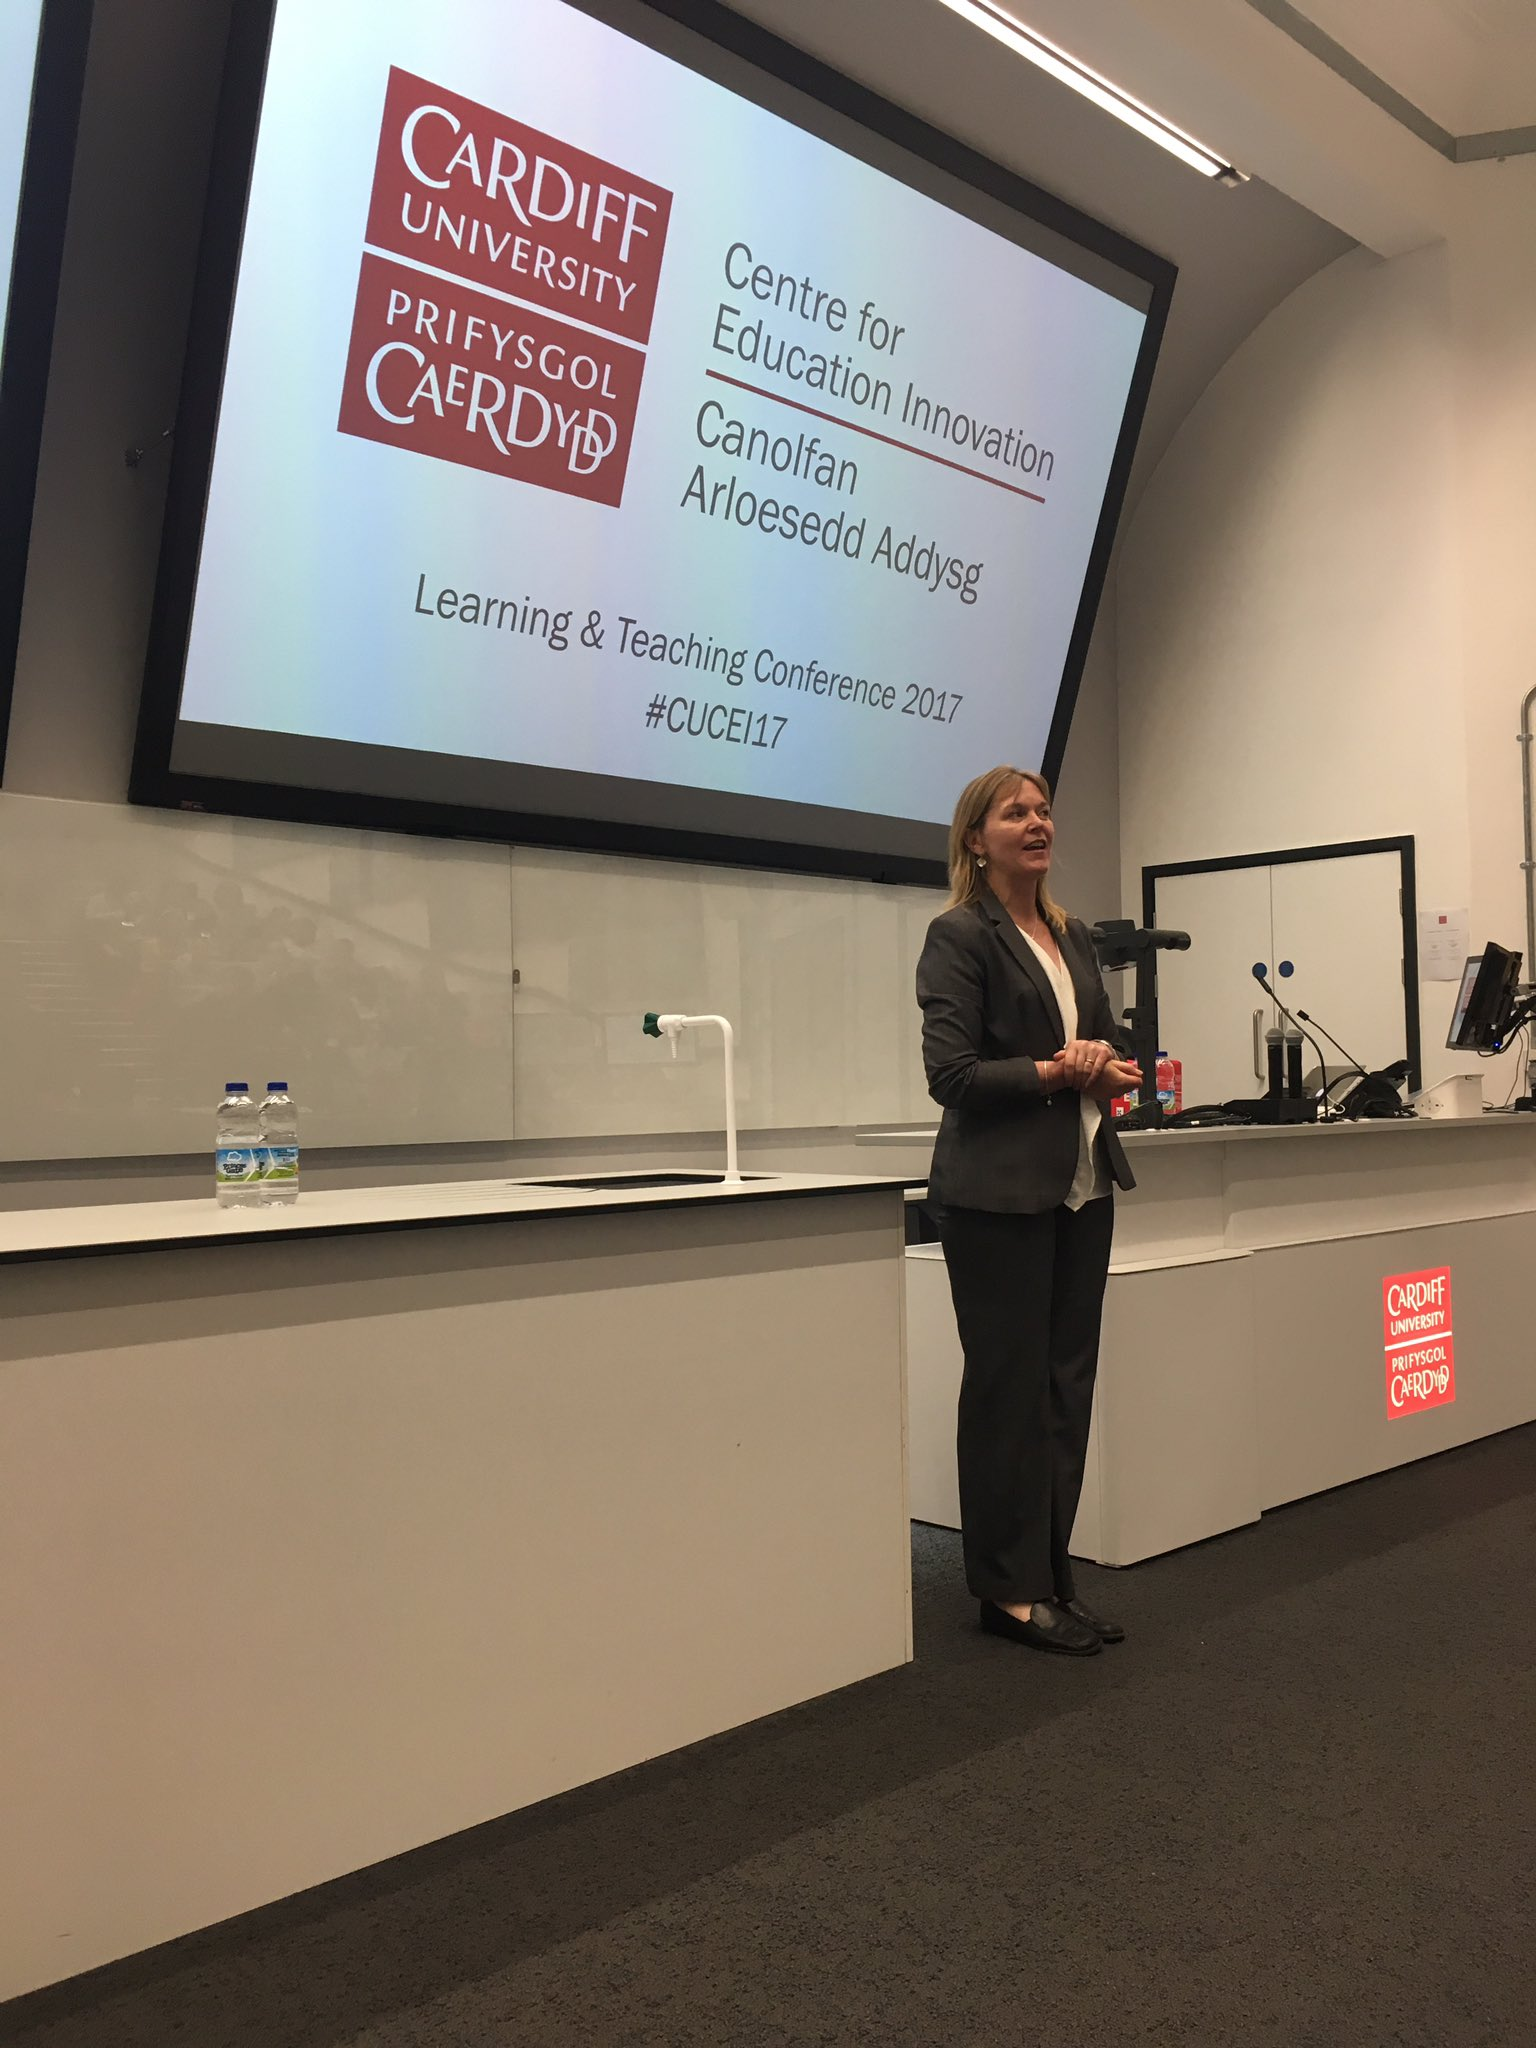 And we're off-Prof Amanda Coffey introduces the day #CUCEI17 https://t.co/y00ptm8OLx